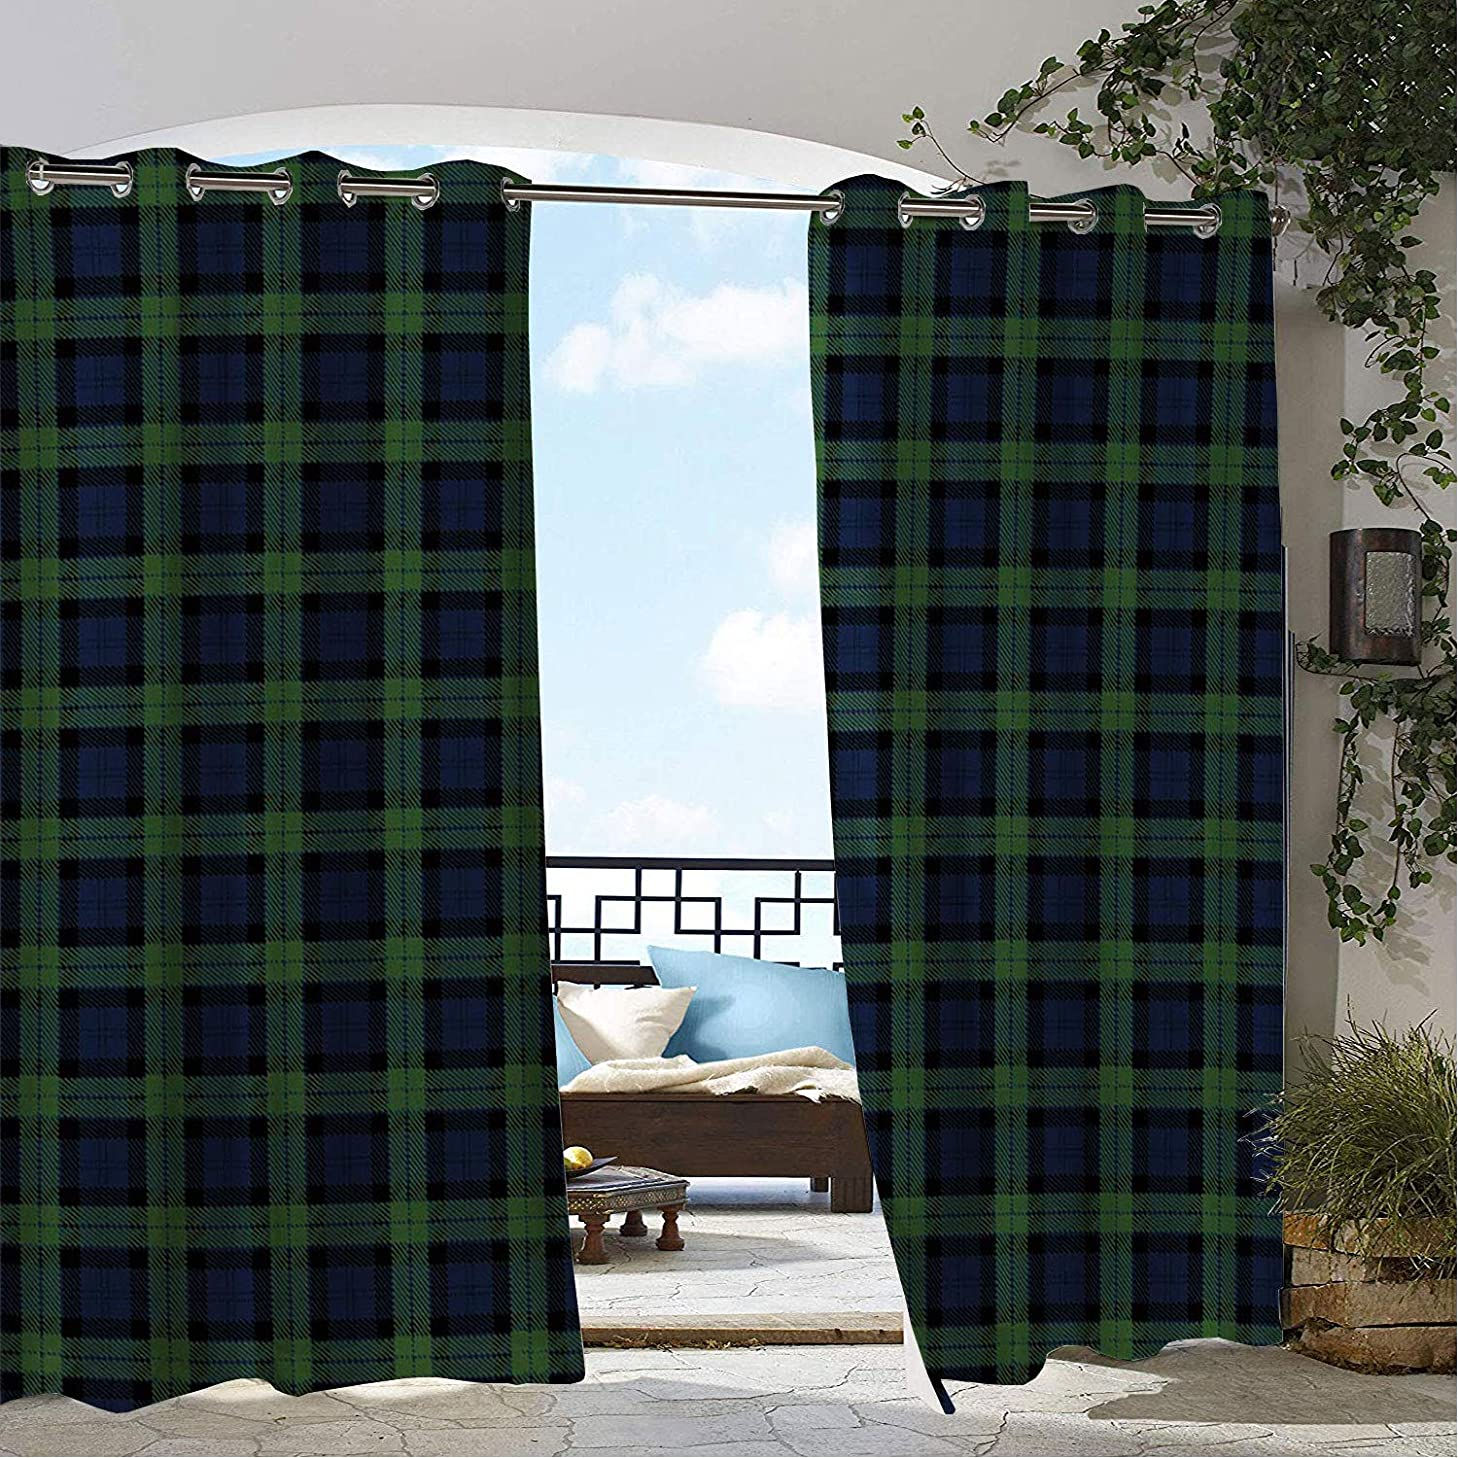 Linhomedecor Gazebo Waterproof Curtains Green Scottish Lattice Multicolor pergola Grommet Bathroom Curtain 72 by 72 inch